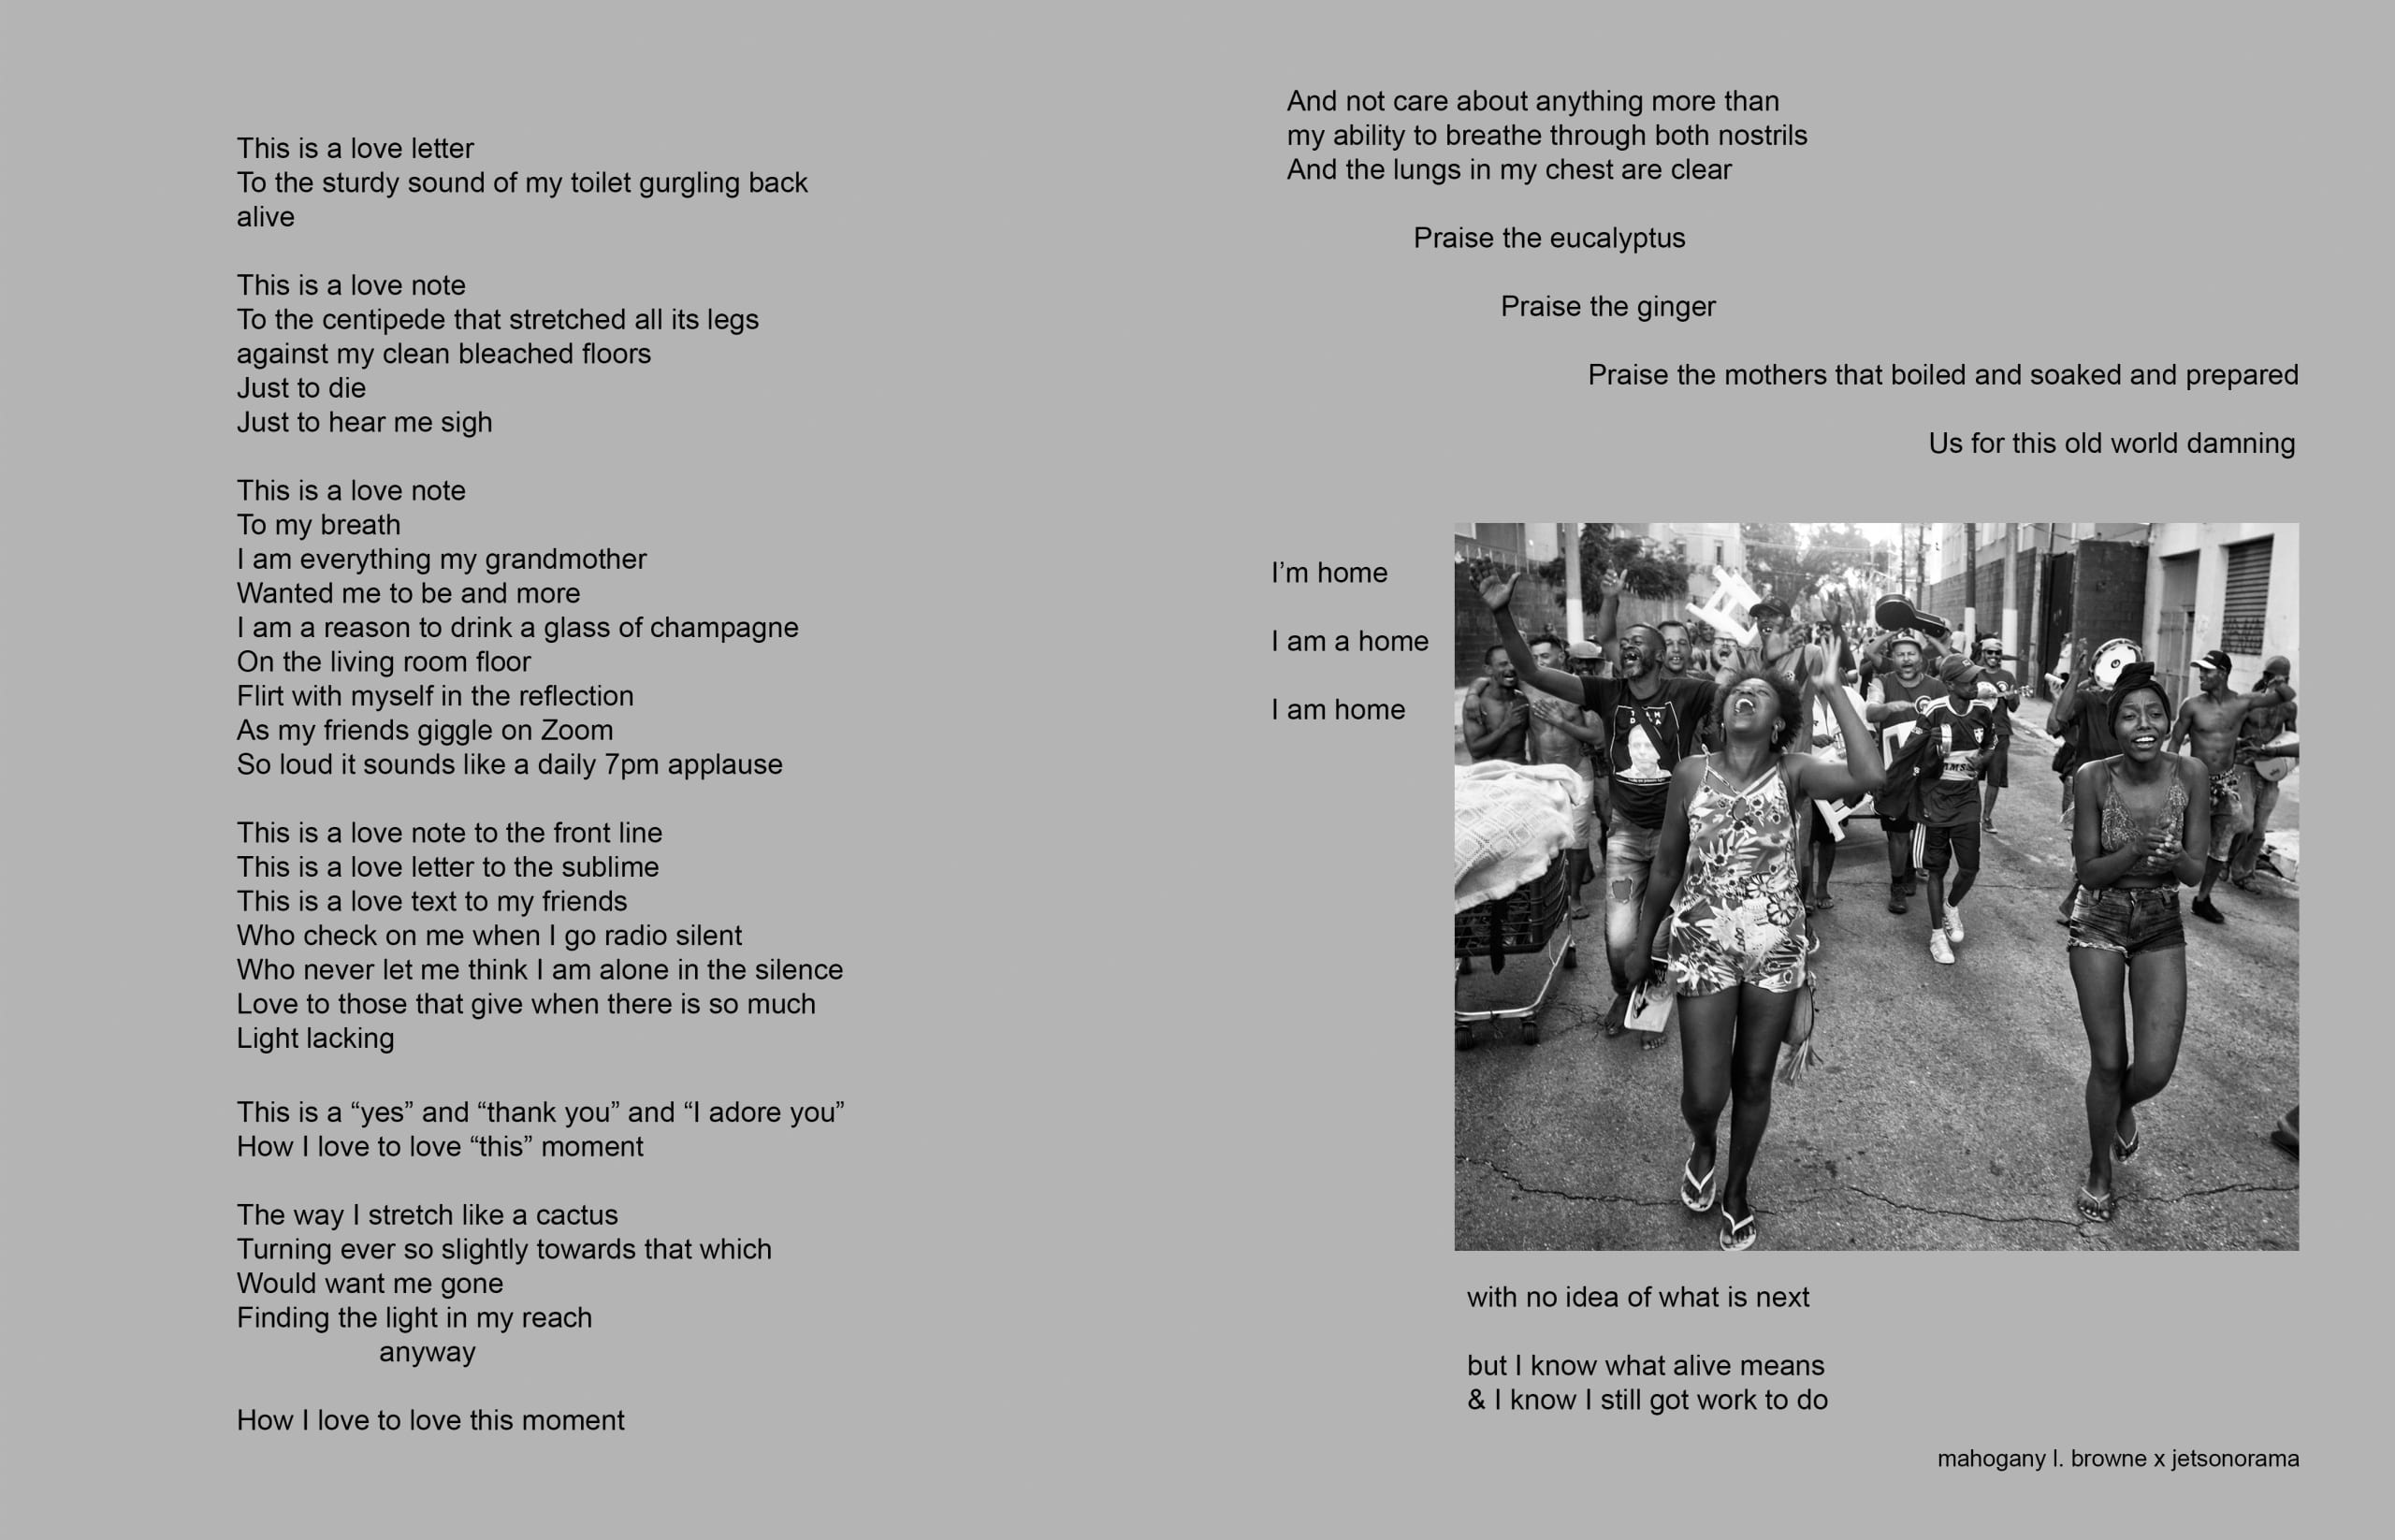 To left, poem on gray background; to right, black and white photo of a crowd dancing in what is described as the largest open-air crack market in the world (Cracolândia), in São Paulo, Brazil. Two laughing women anchor the foreground. Everyone in the photograph is singing the lyrics to a popular samba song; the smiles on the people's faces reflect the feeling experienced as they hear this song again and presumably remember a better time